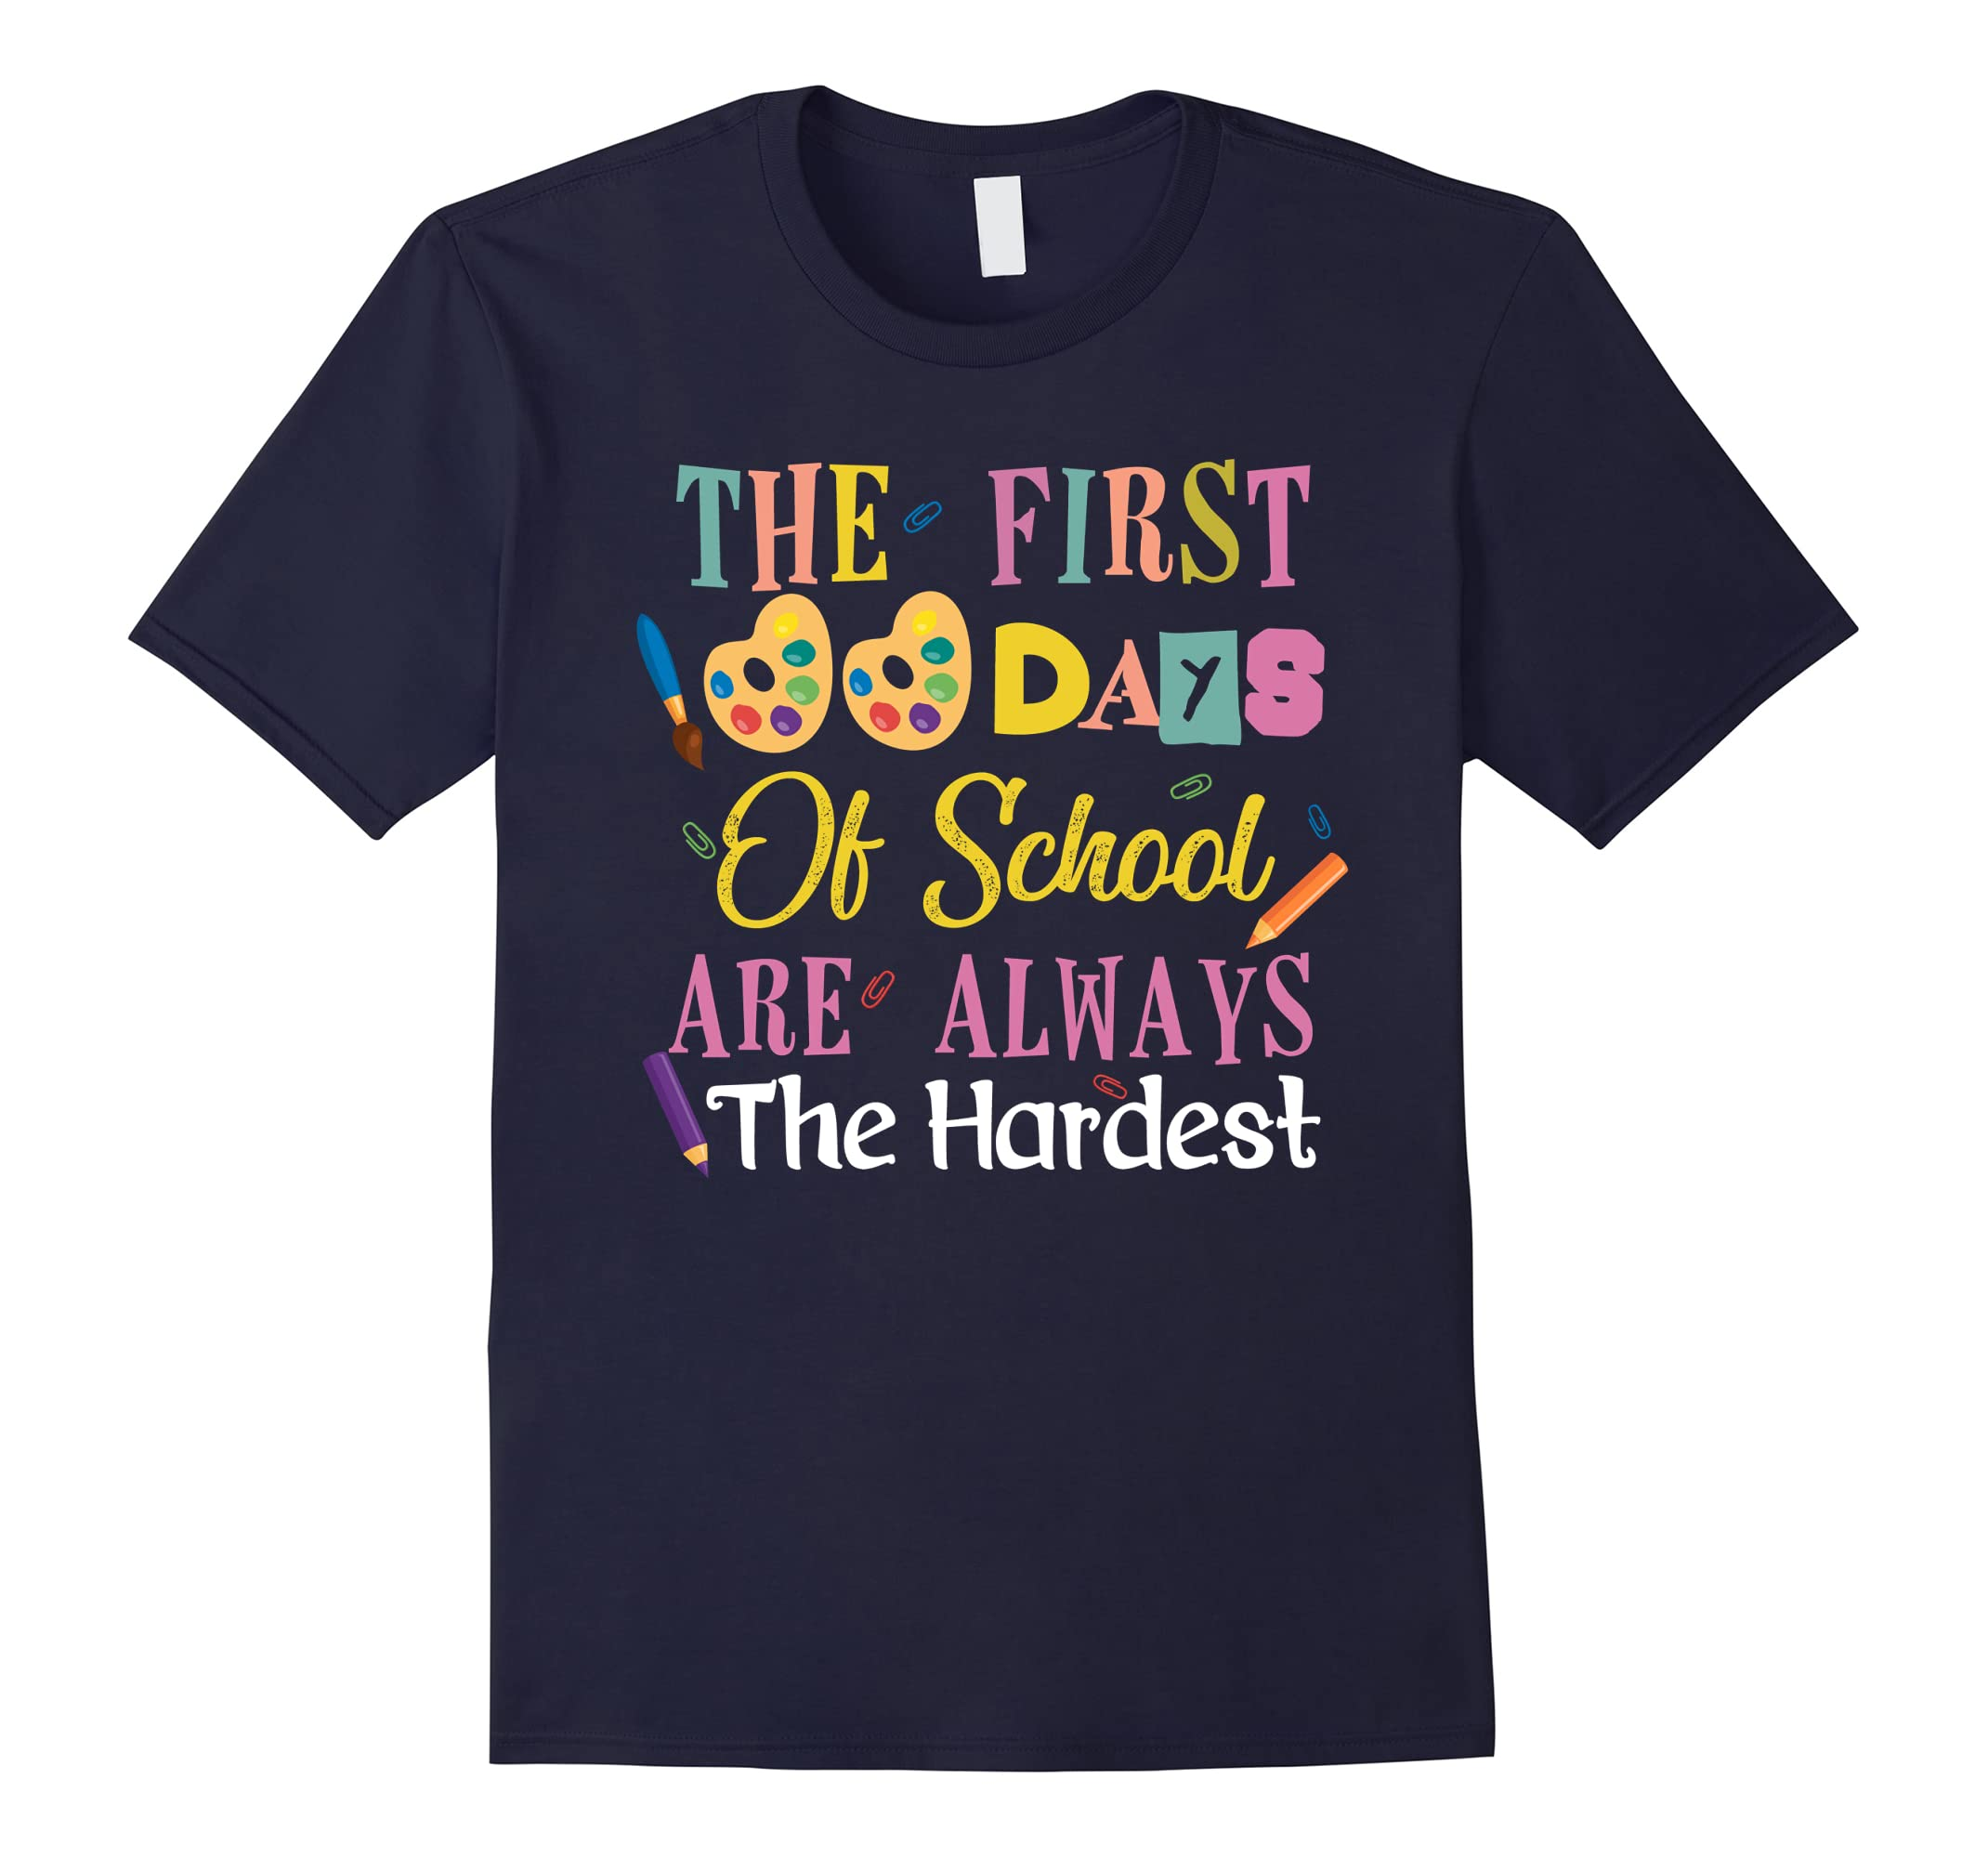 100th Day School Shirt The First 100 Days Of School T Shirt-ah my shirt one gift